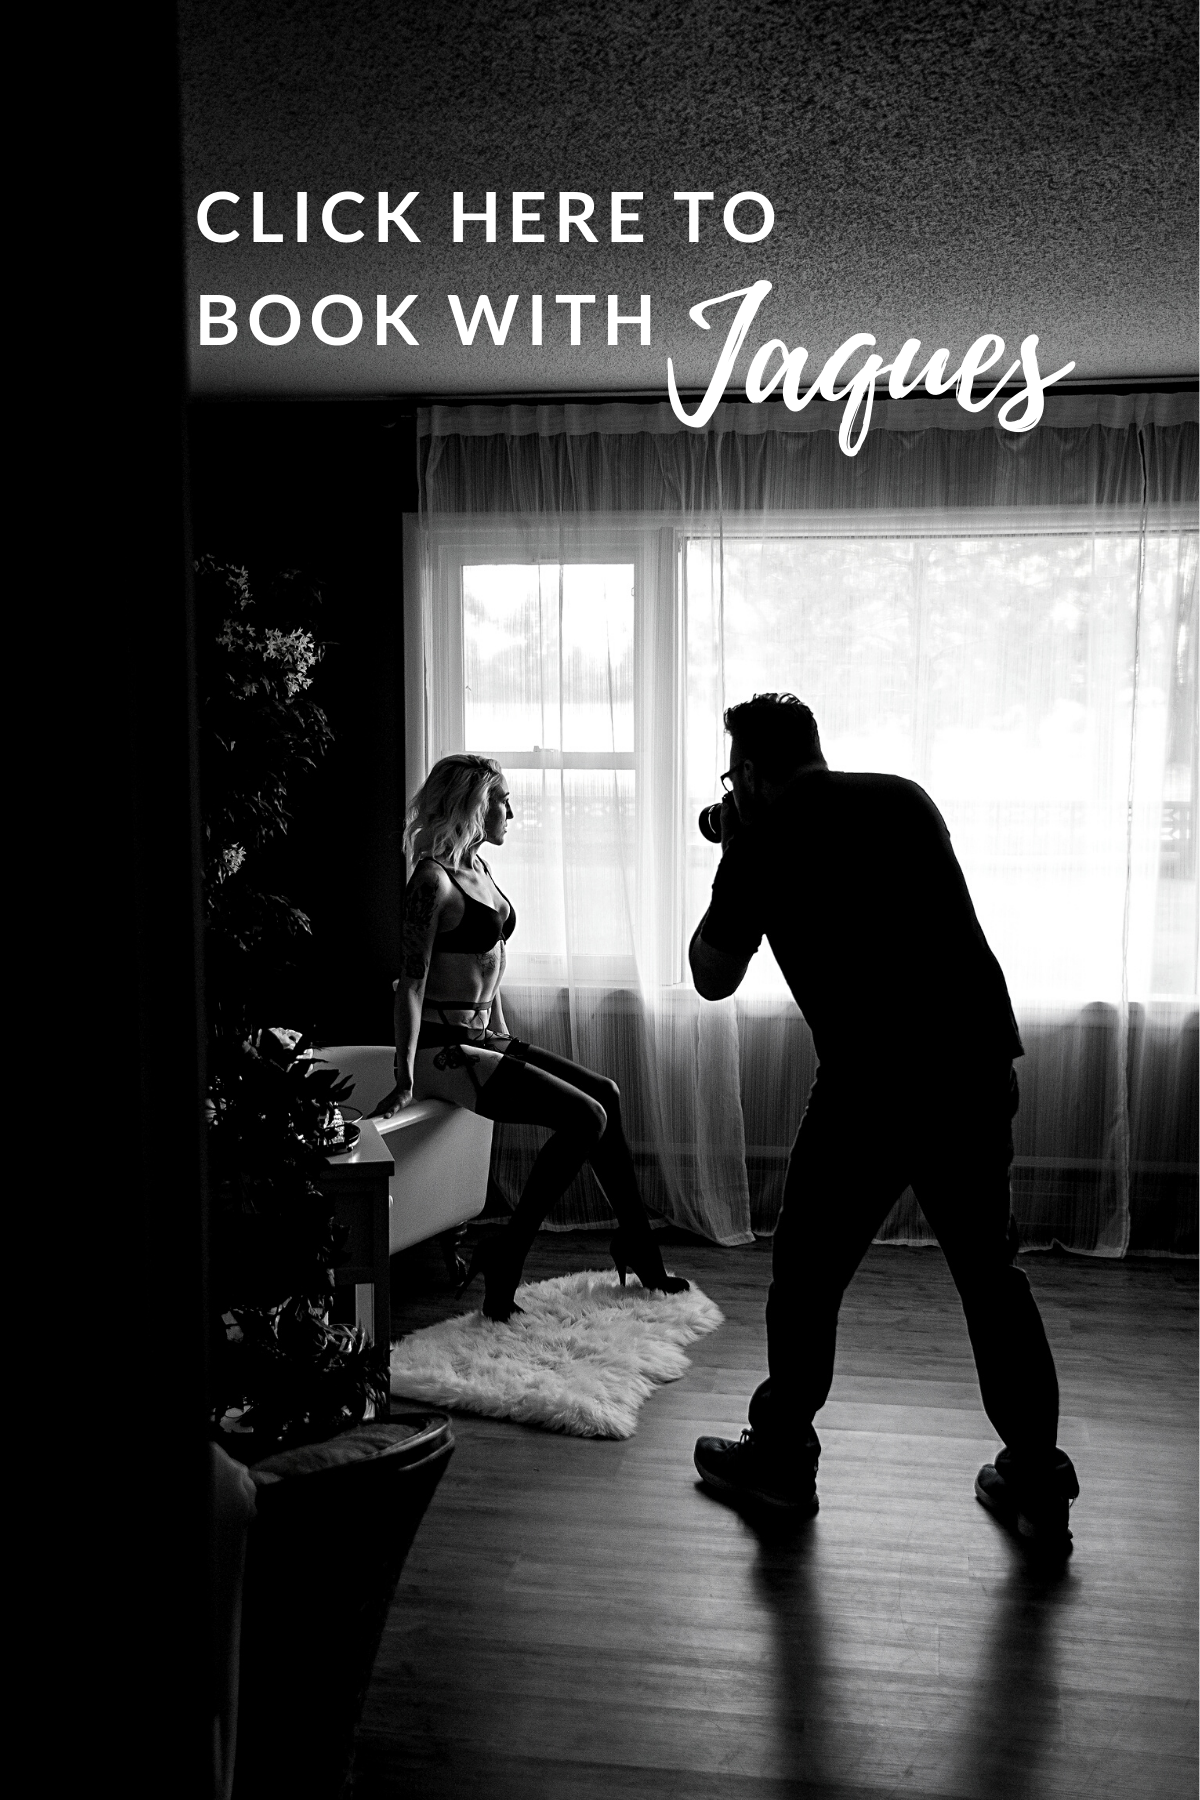 Booking with Jaques